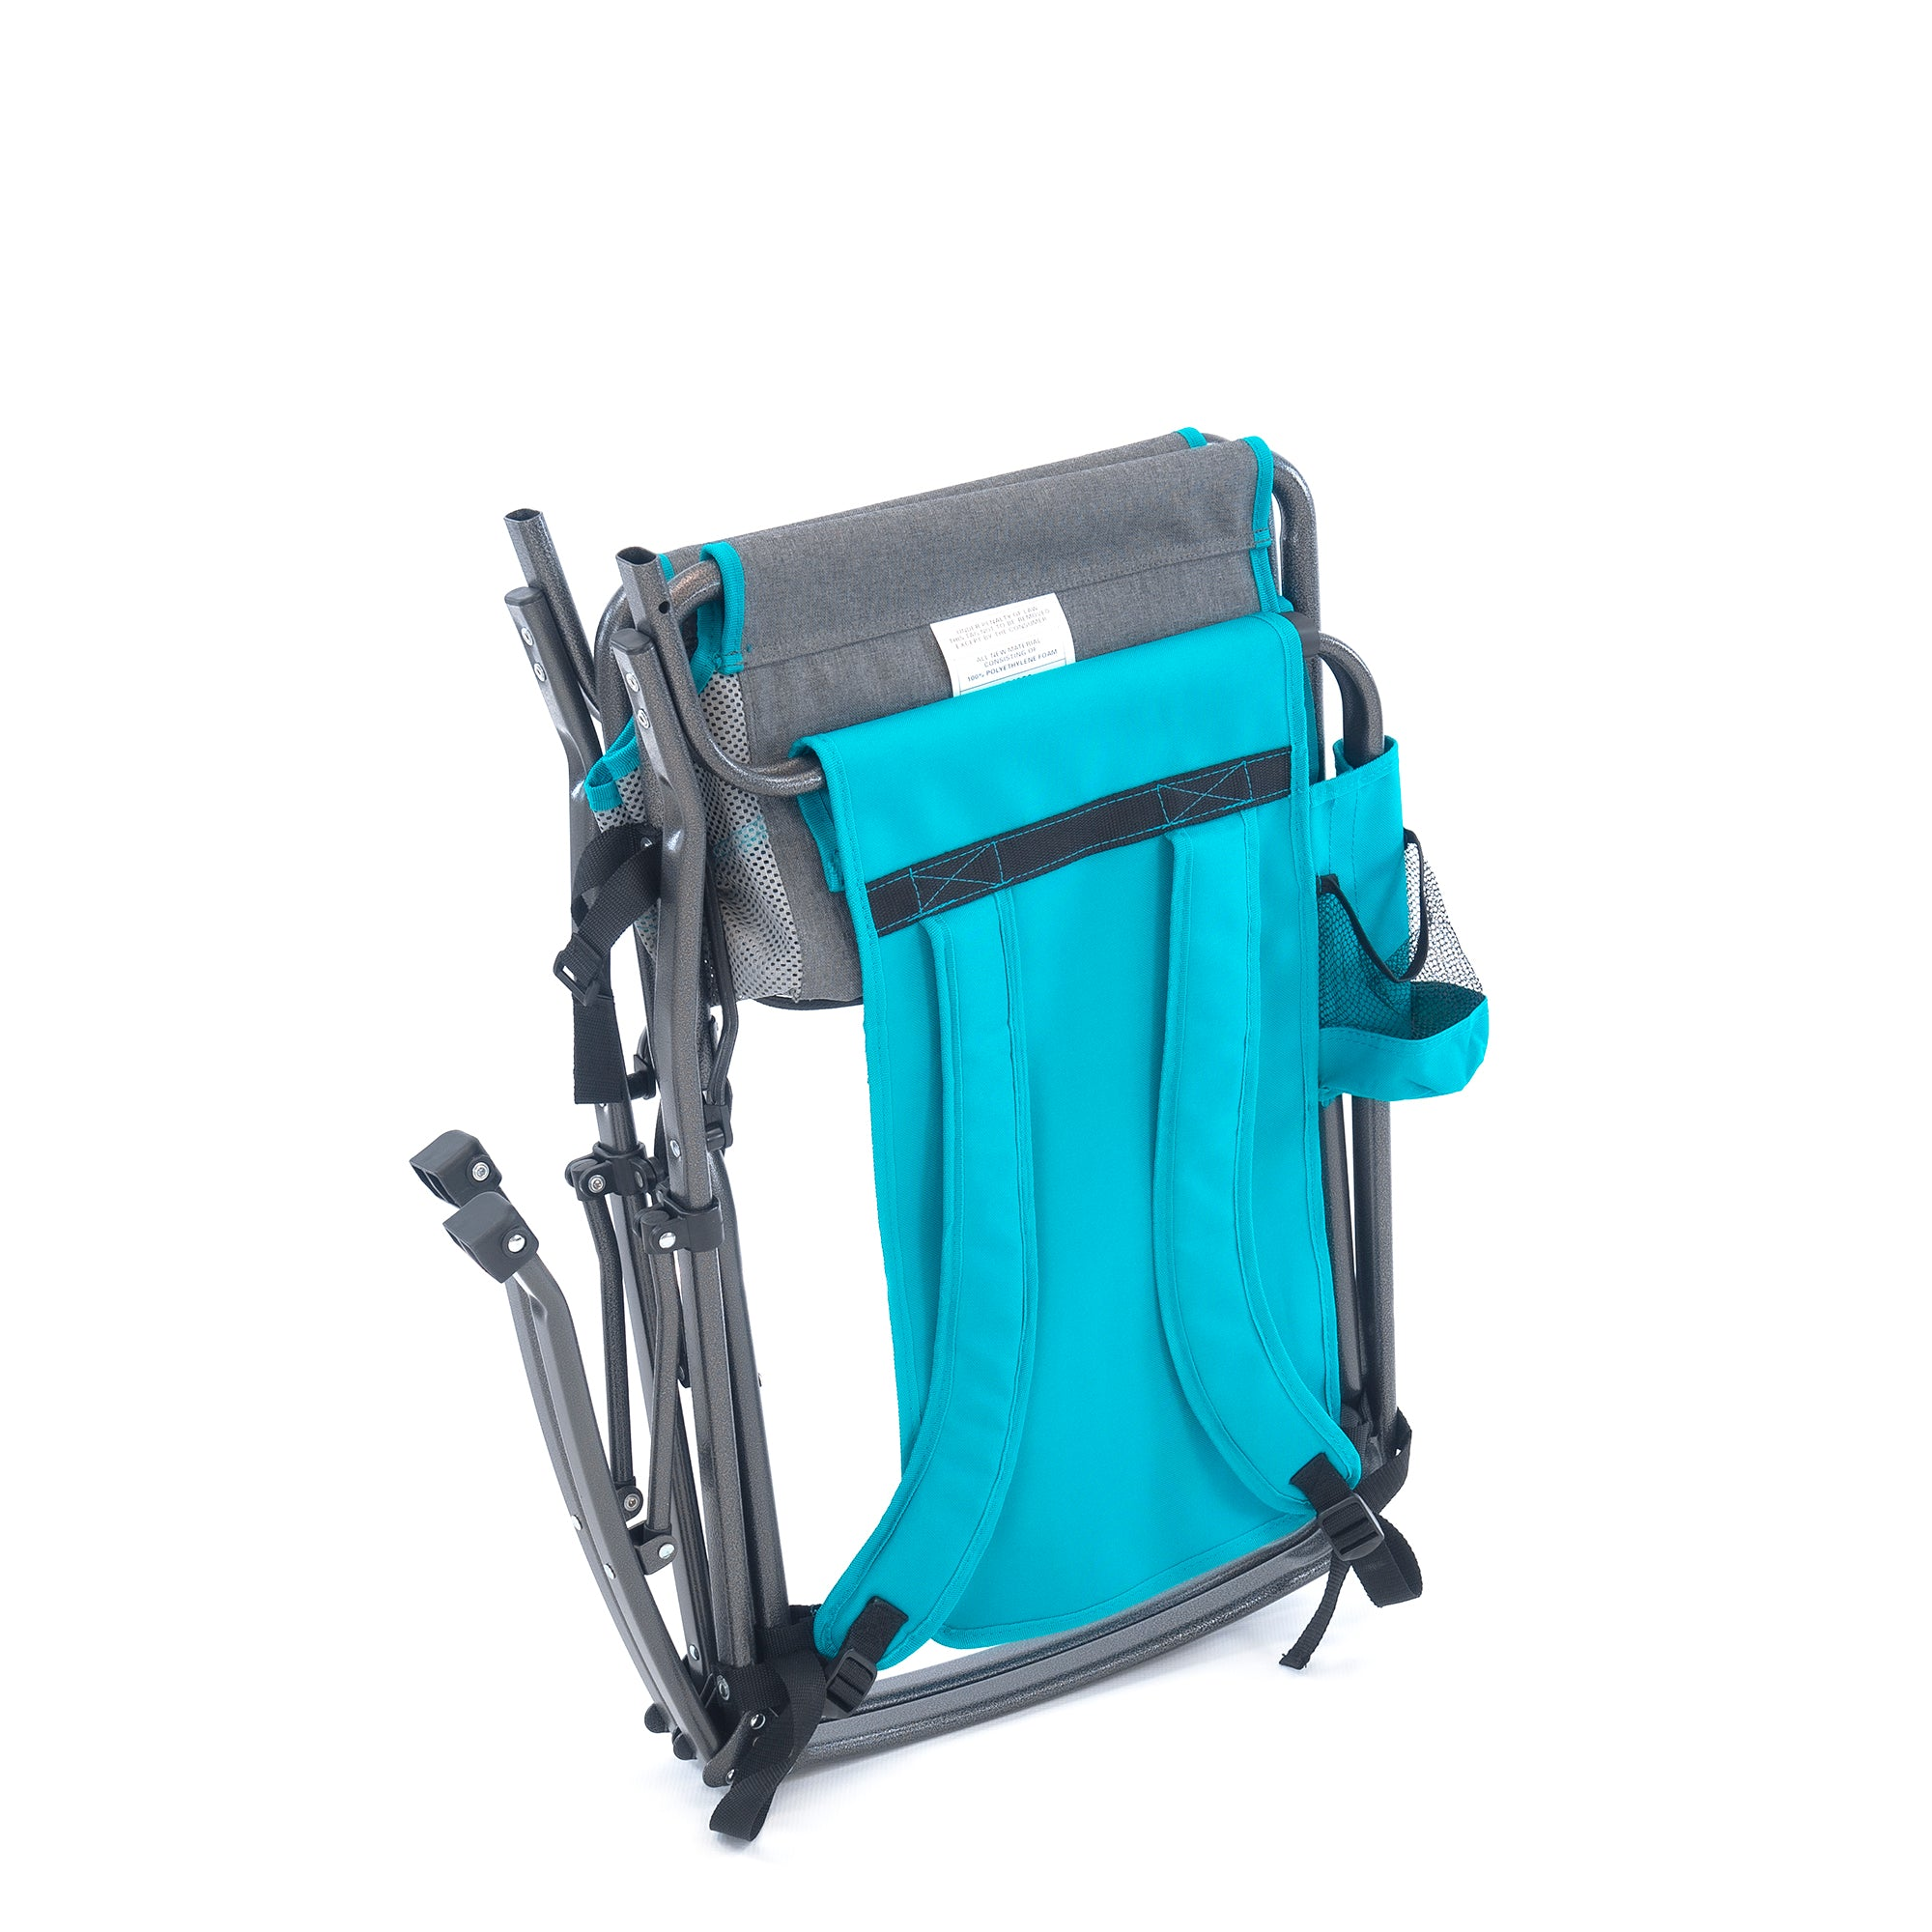 Rocking Folding Director Chair Gray Teal Backpack Straps Cup Holder Magazine Pocket Detachable Cooler Mesh Back